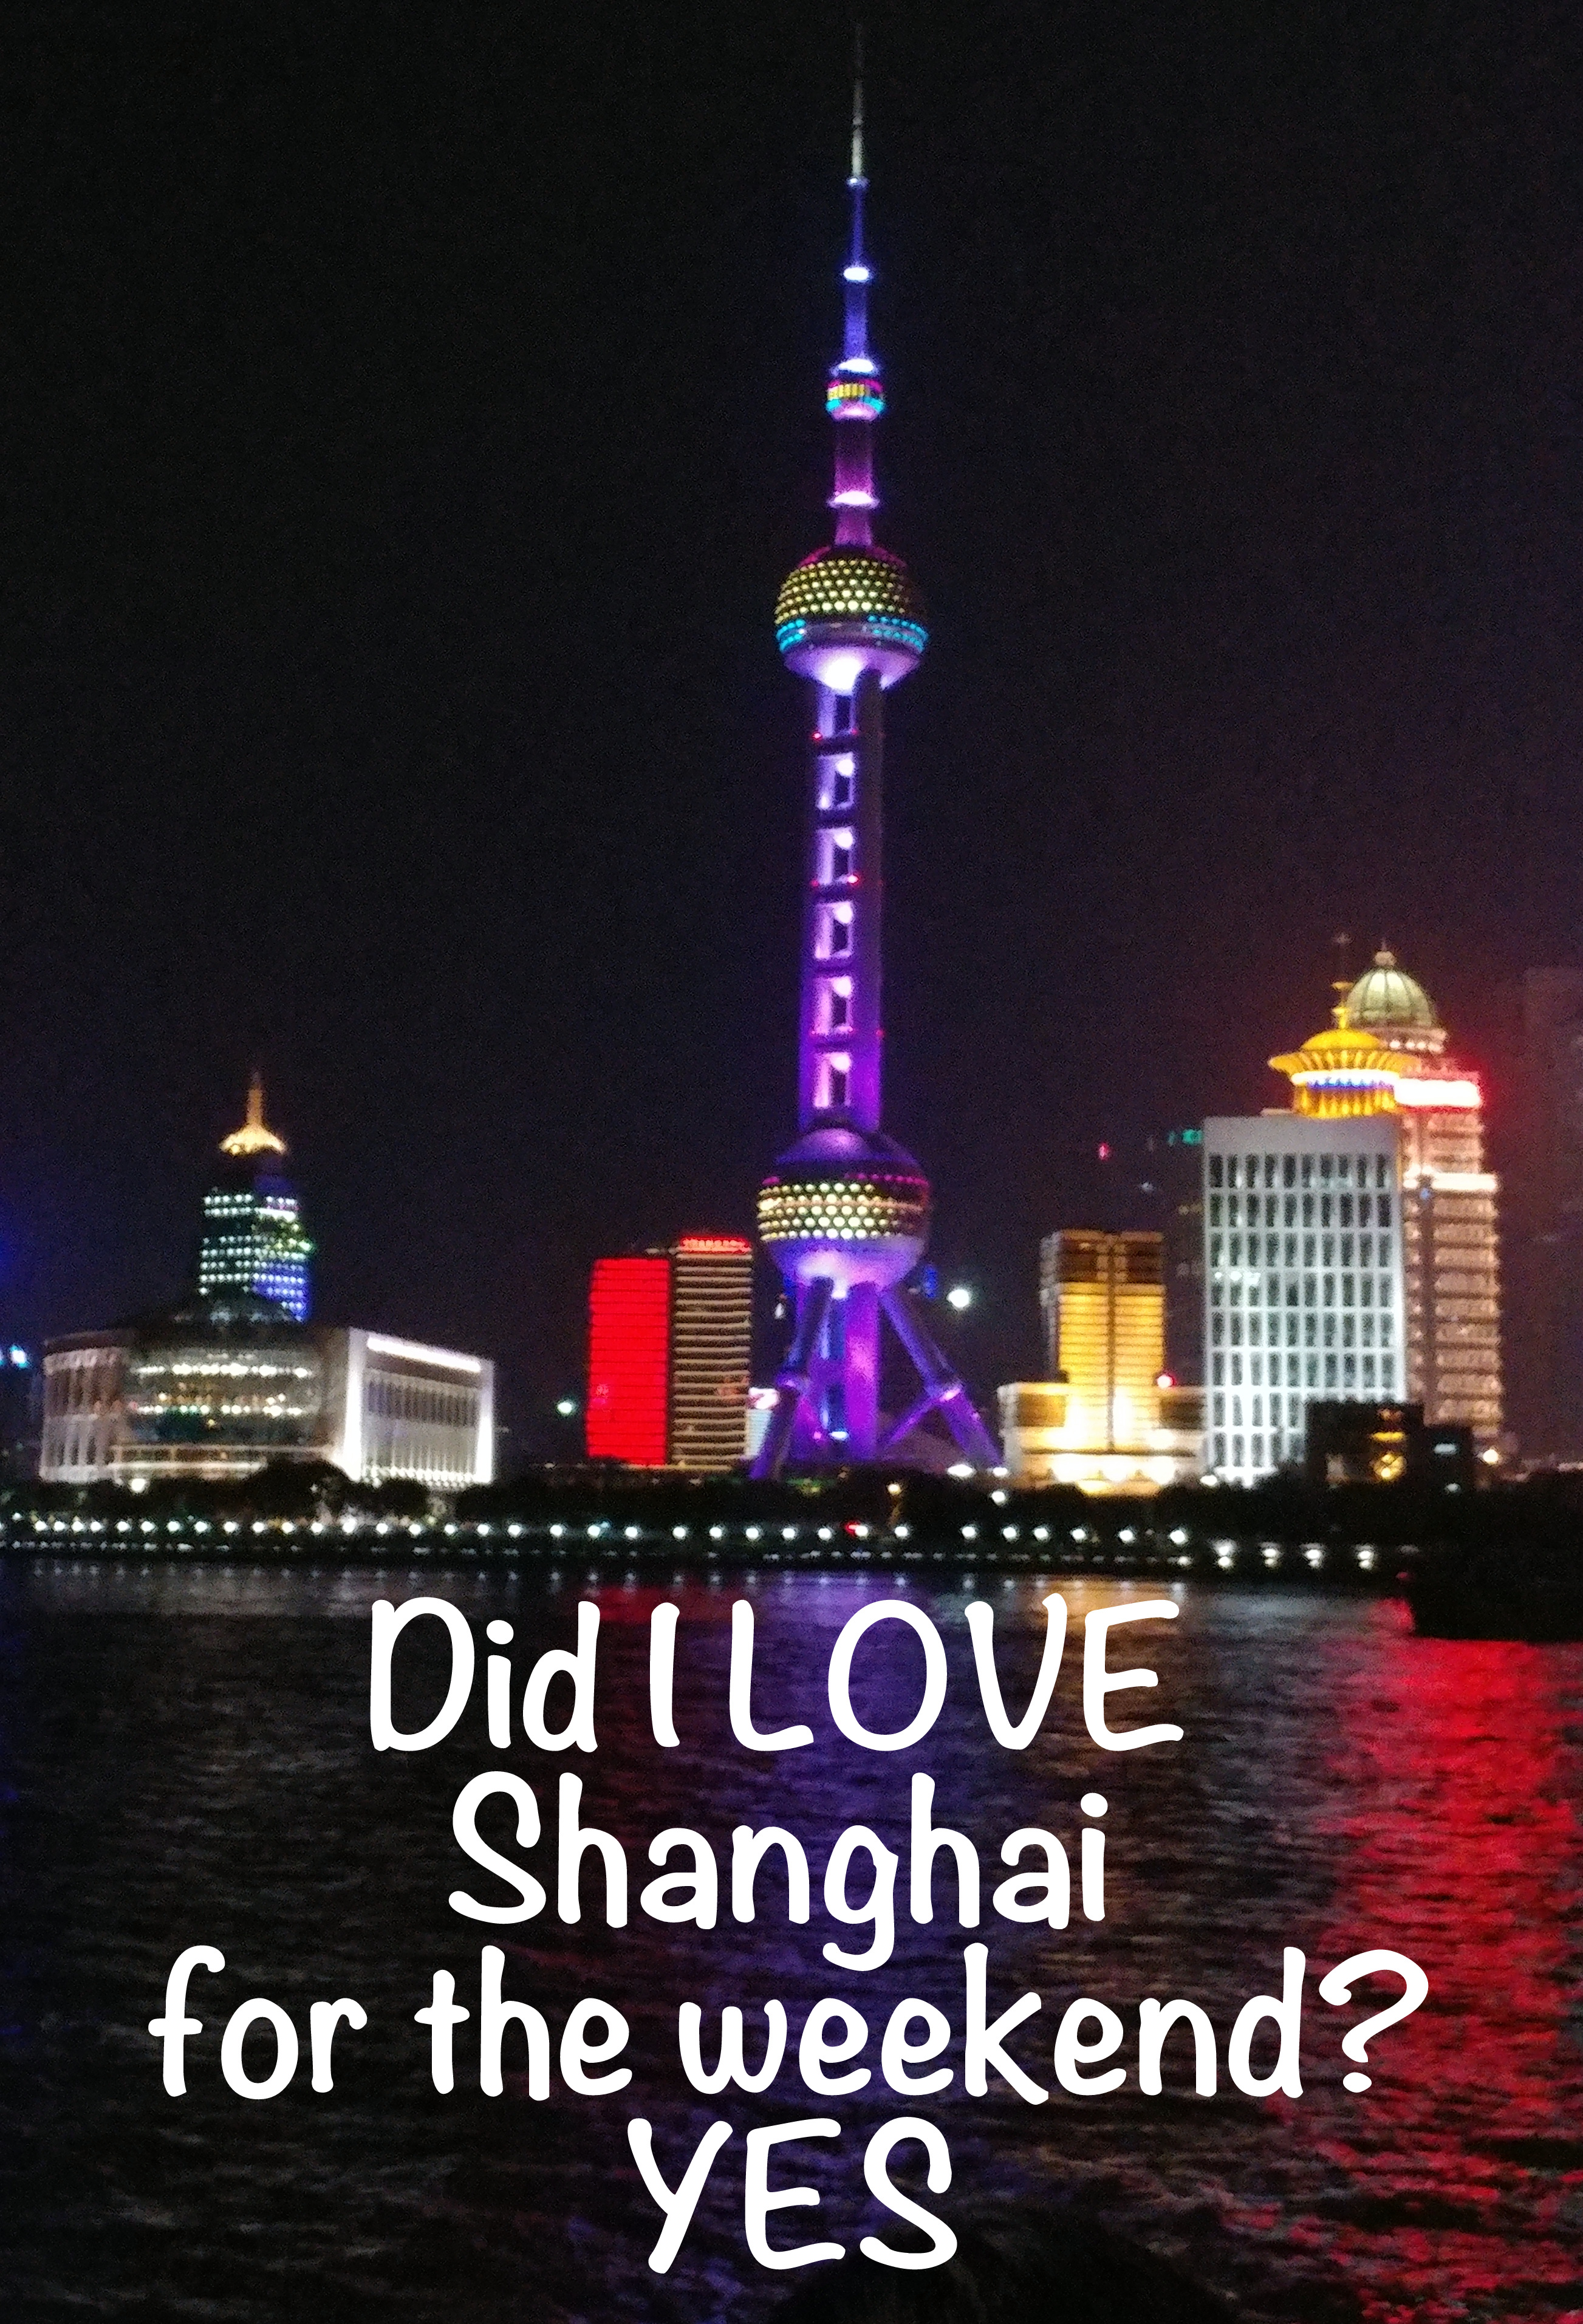 Did I LOVE Shanghai for the Weekend? Yes!